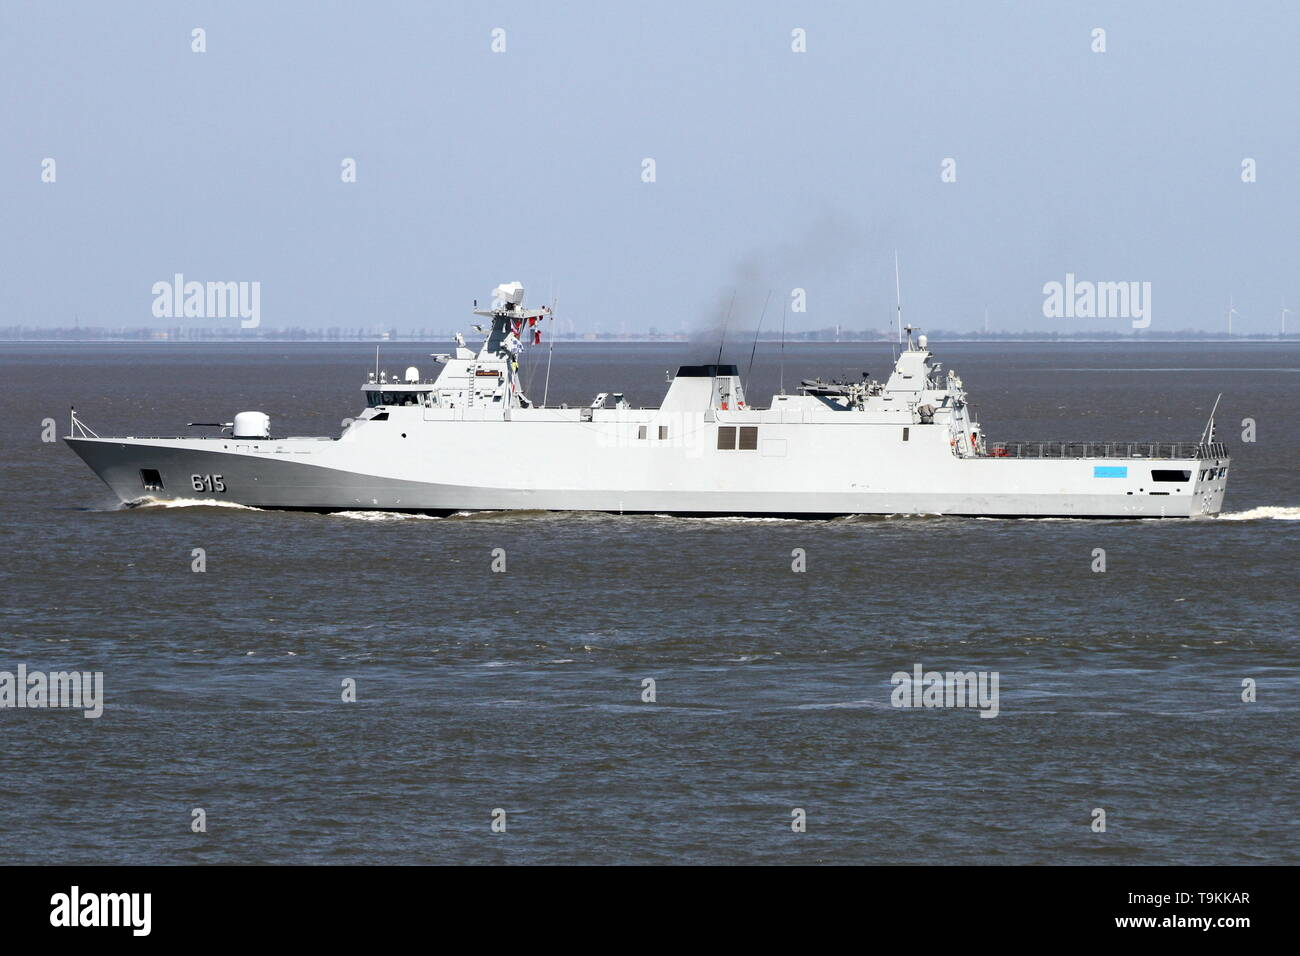 The military ship Allal Beb Abdellah passes on 15 April 2019 Cuxhaven and continues towards the North Sea. - Stock Image